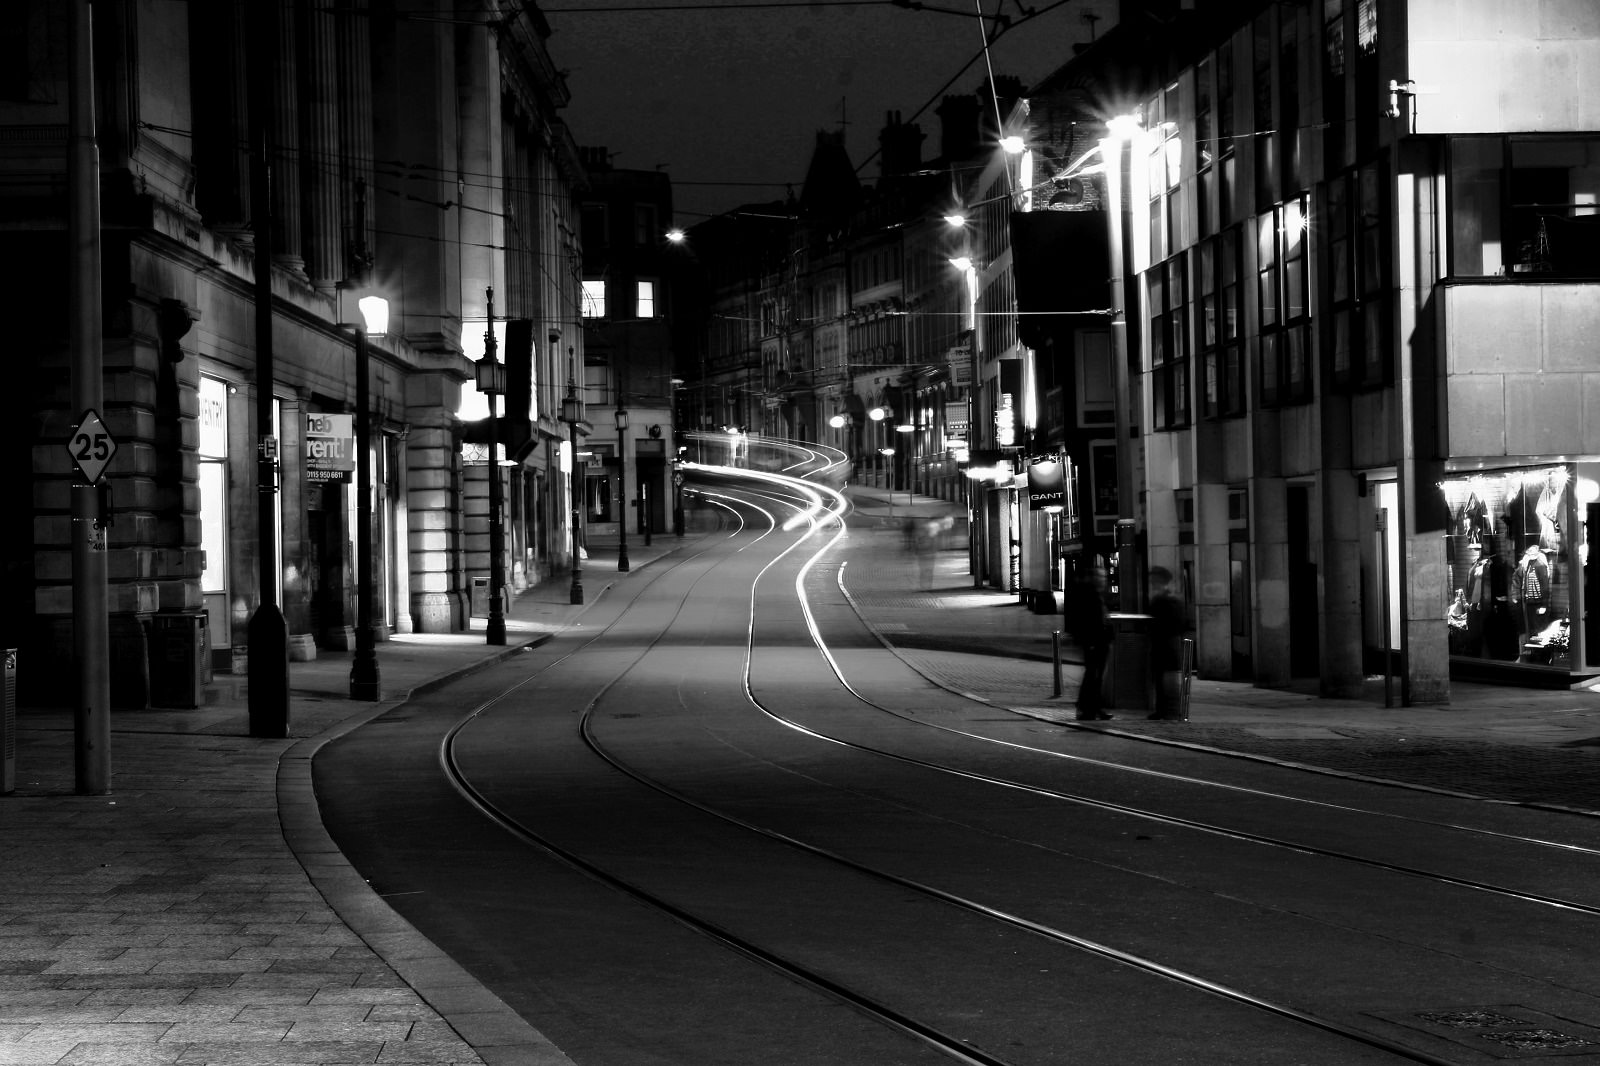 Black And White Hd Wallpapers Wallpaper Street Other Photo